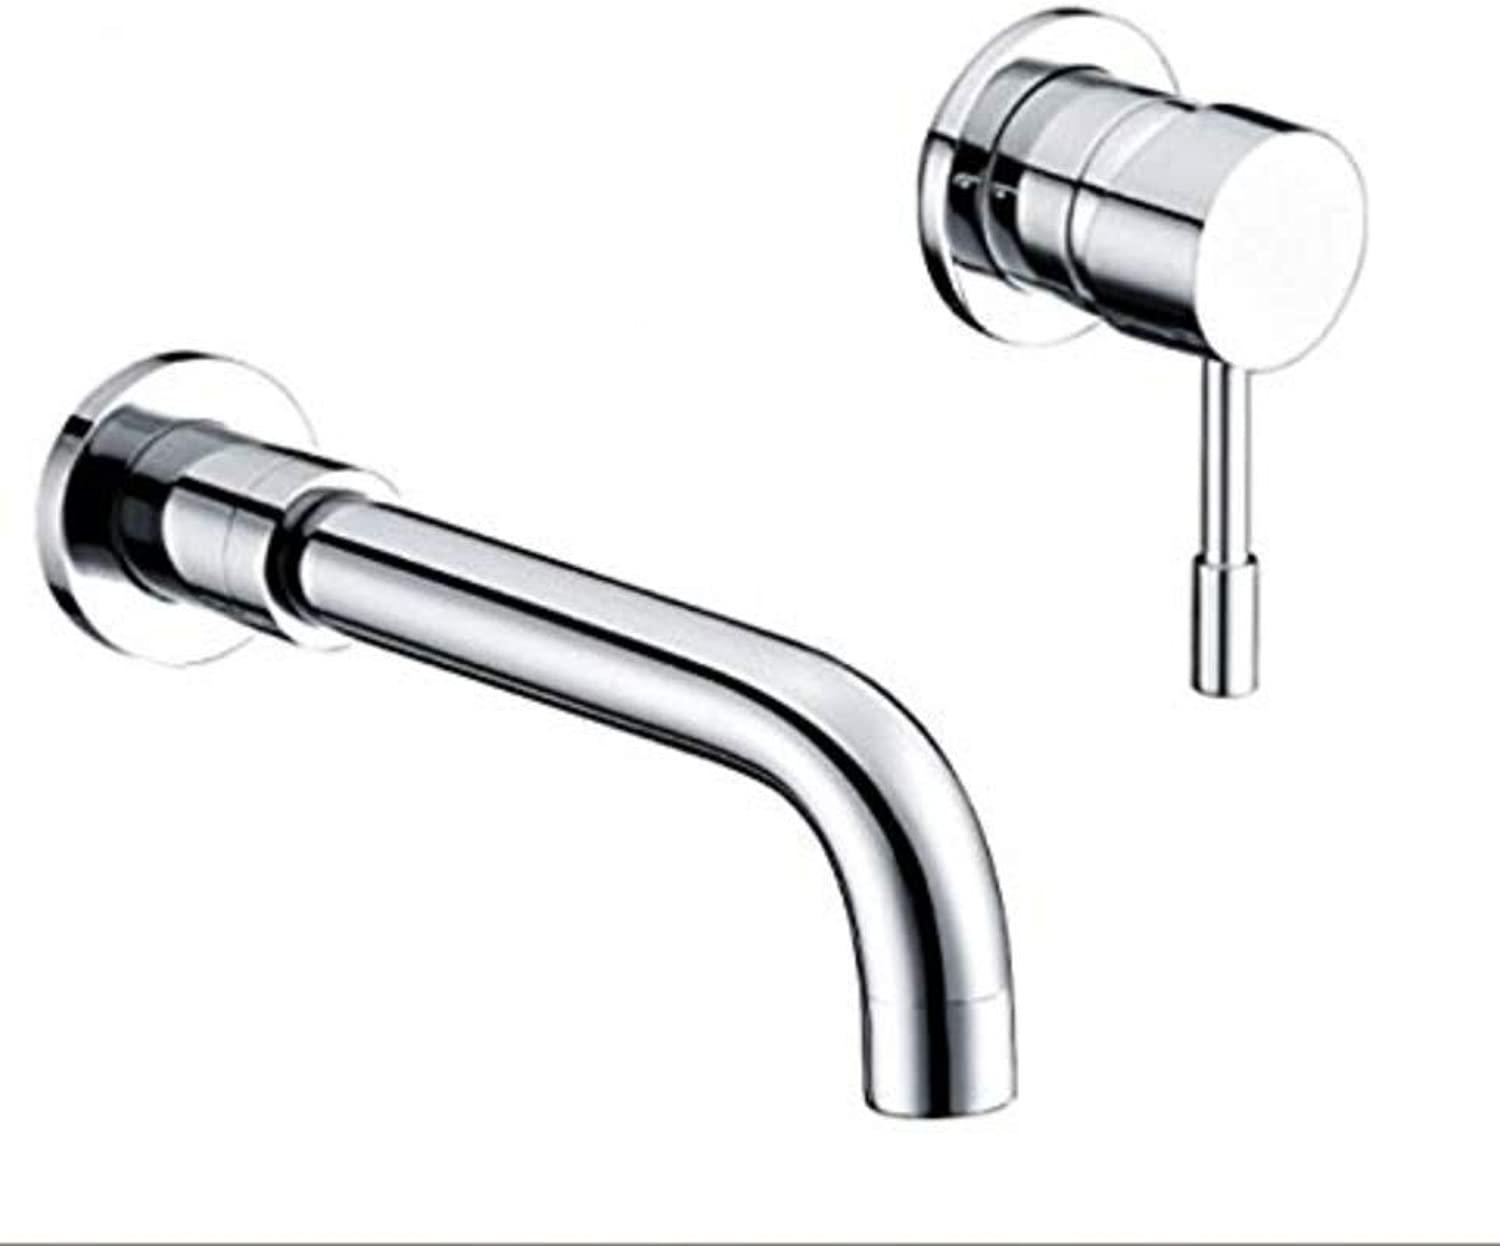 Basin Taps Swivel Spout Faucet Standard Bathroom Single Lever Chrome Wall Mounted Basin Sink Mixer Tap